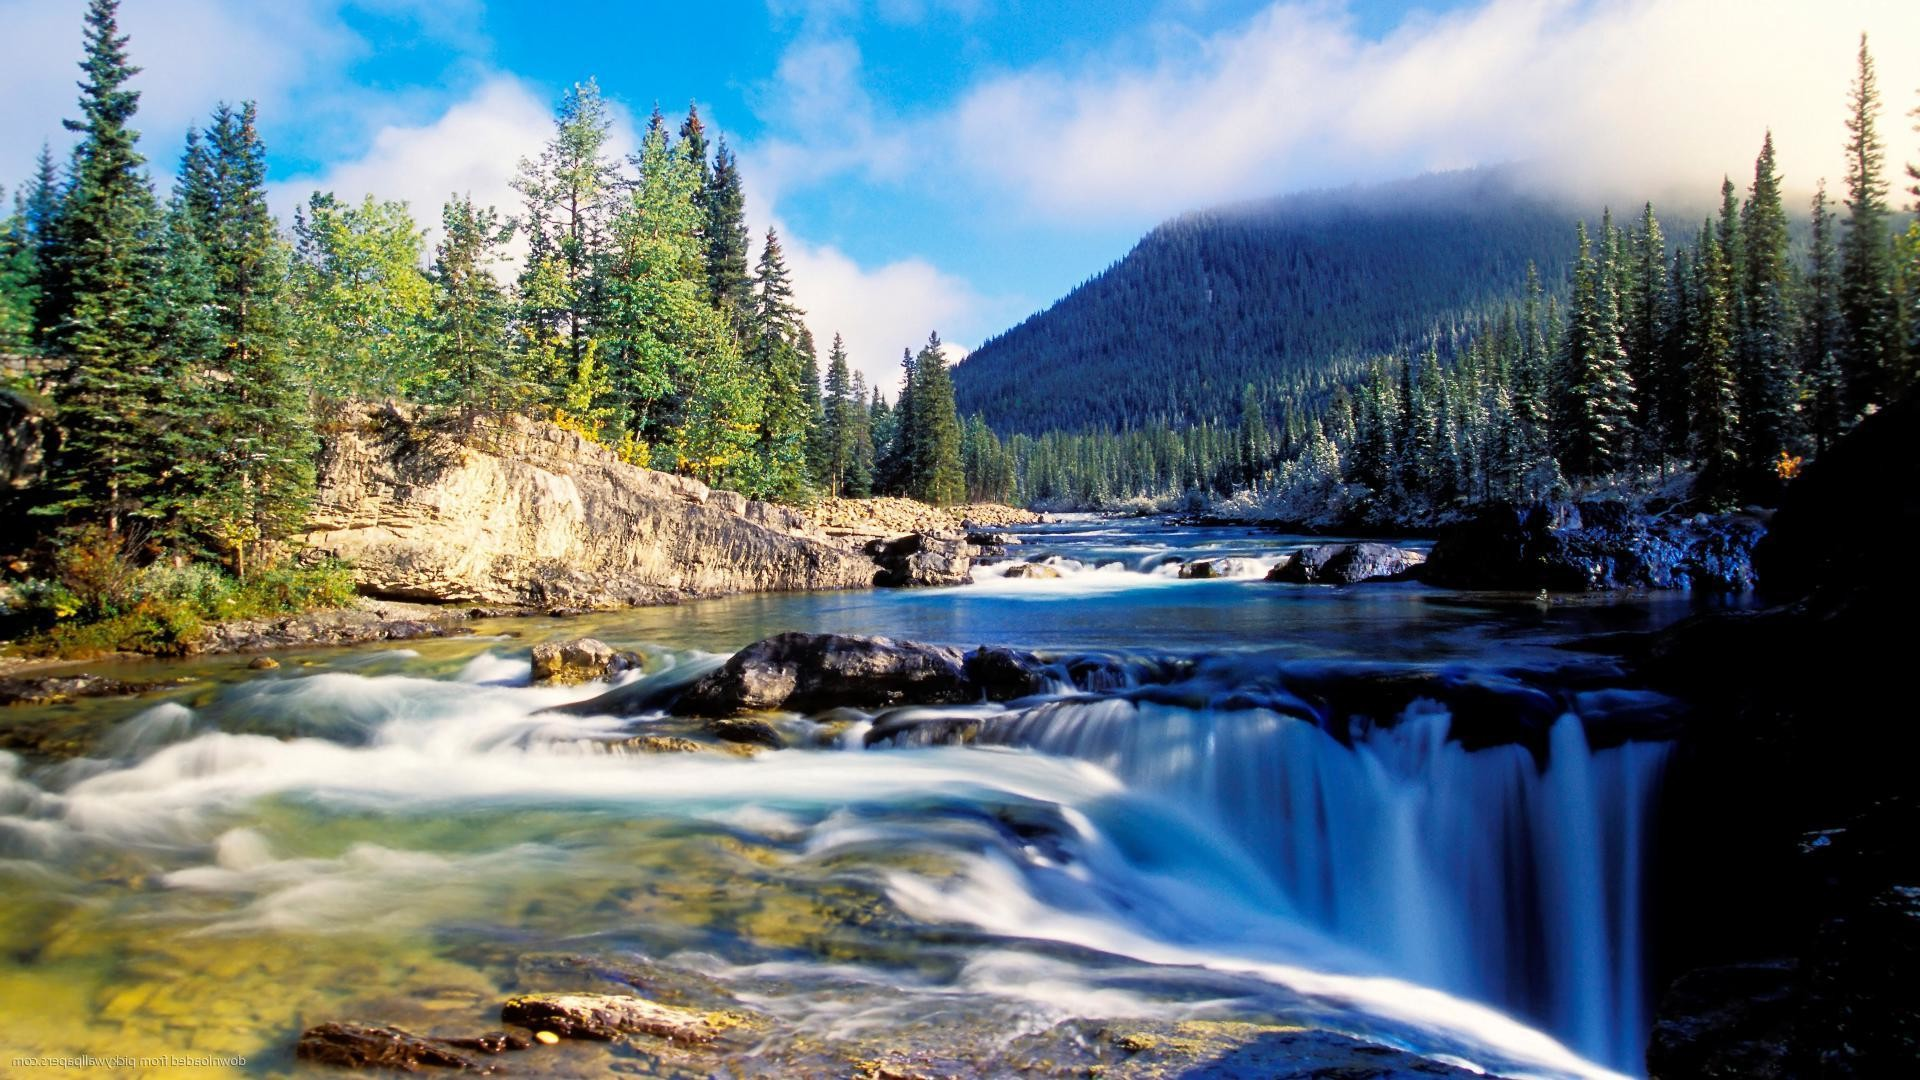 mountain river at summer forest landscape widescreen image